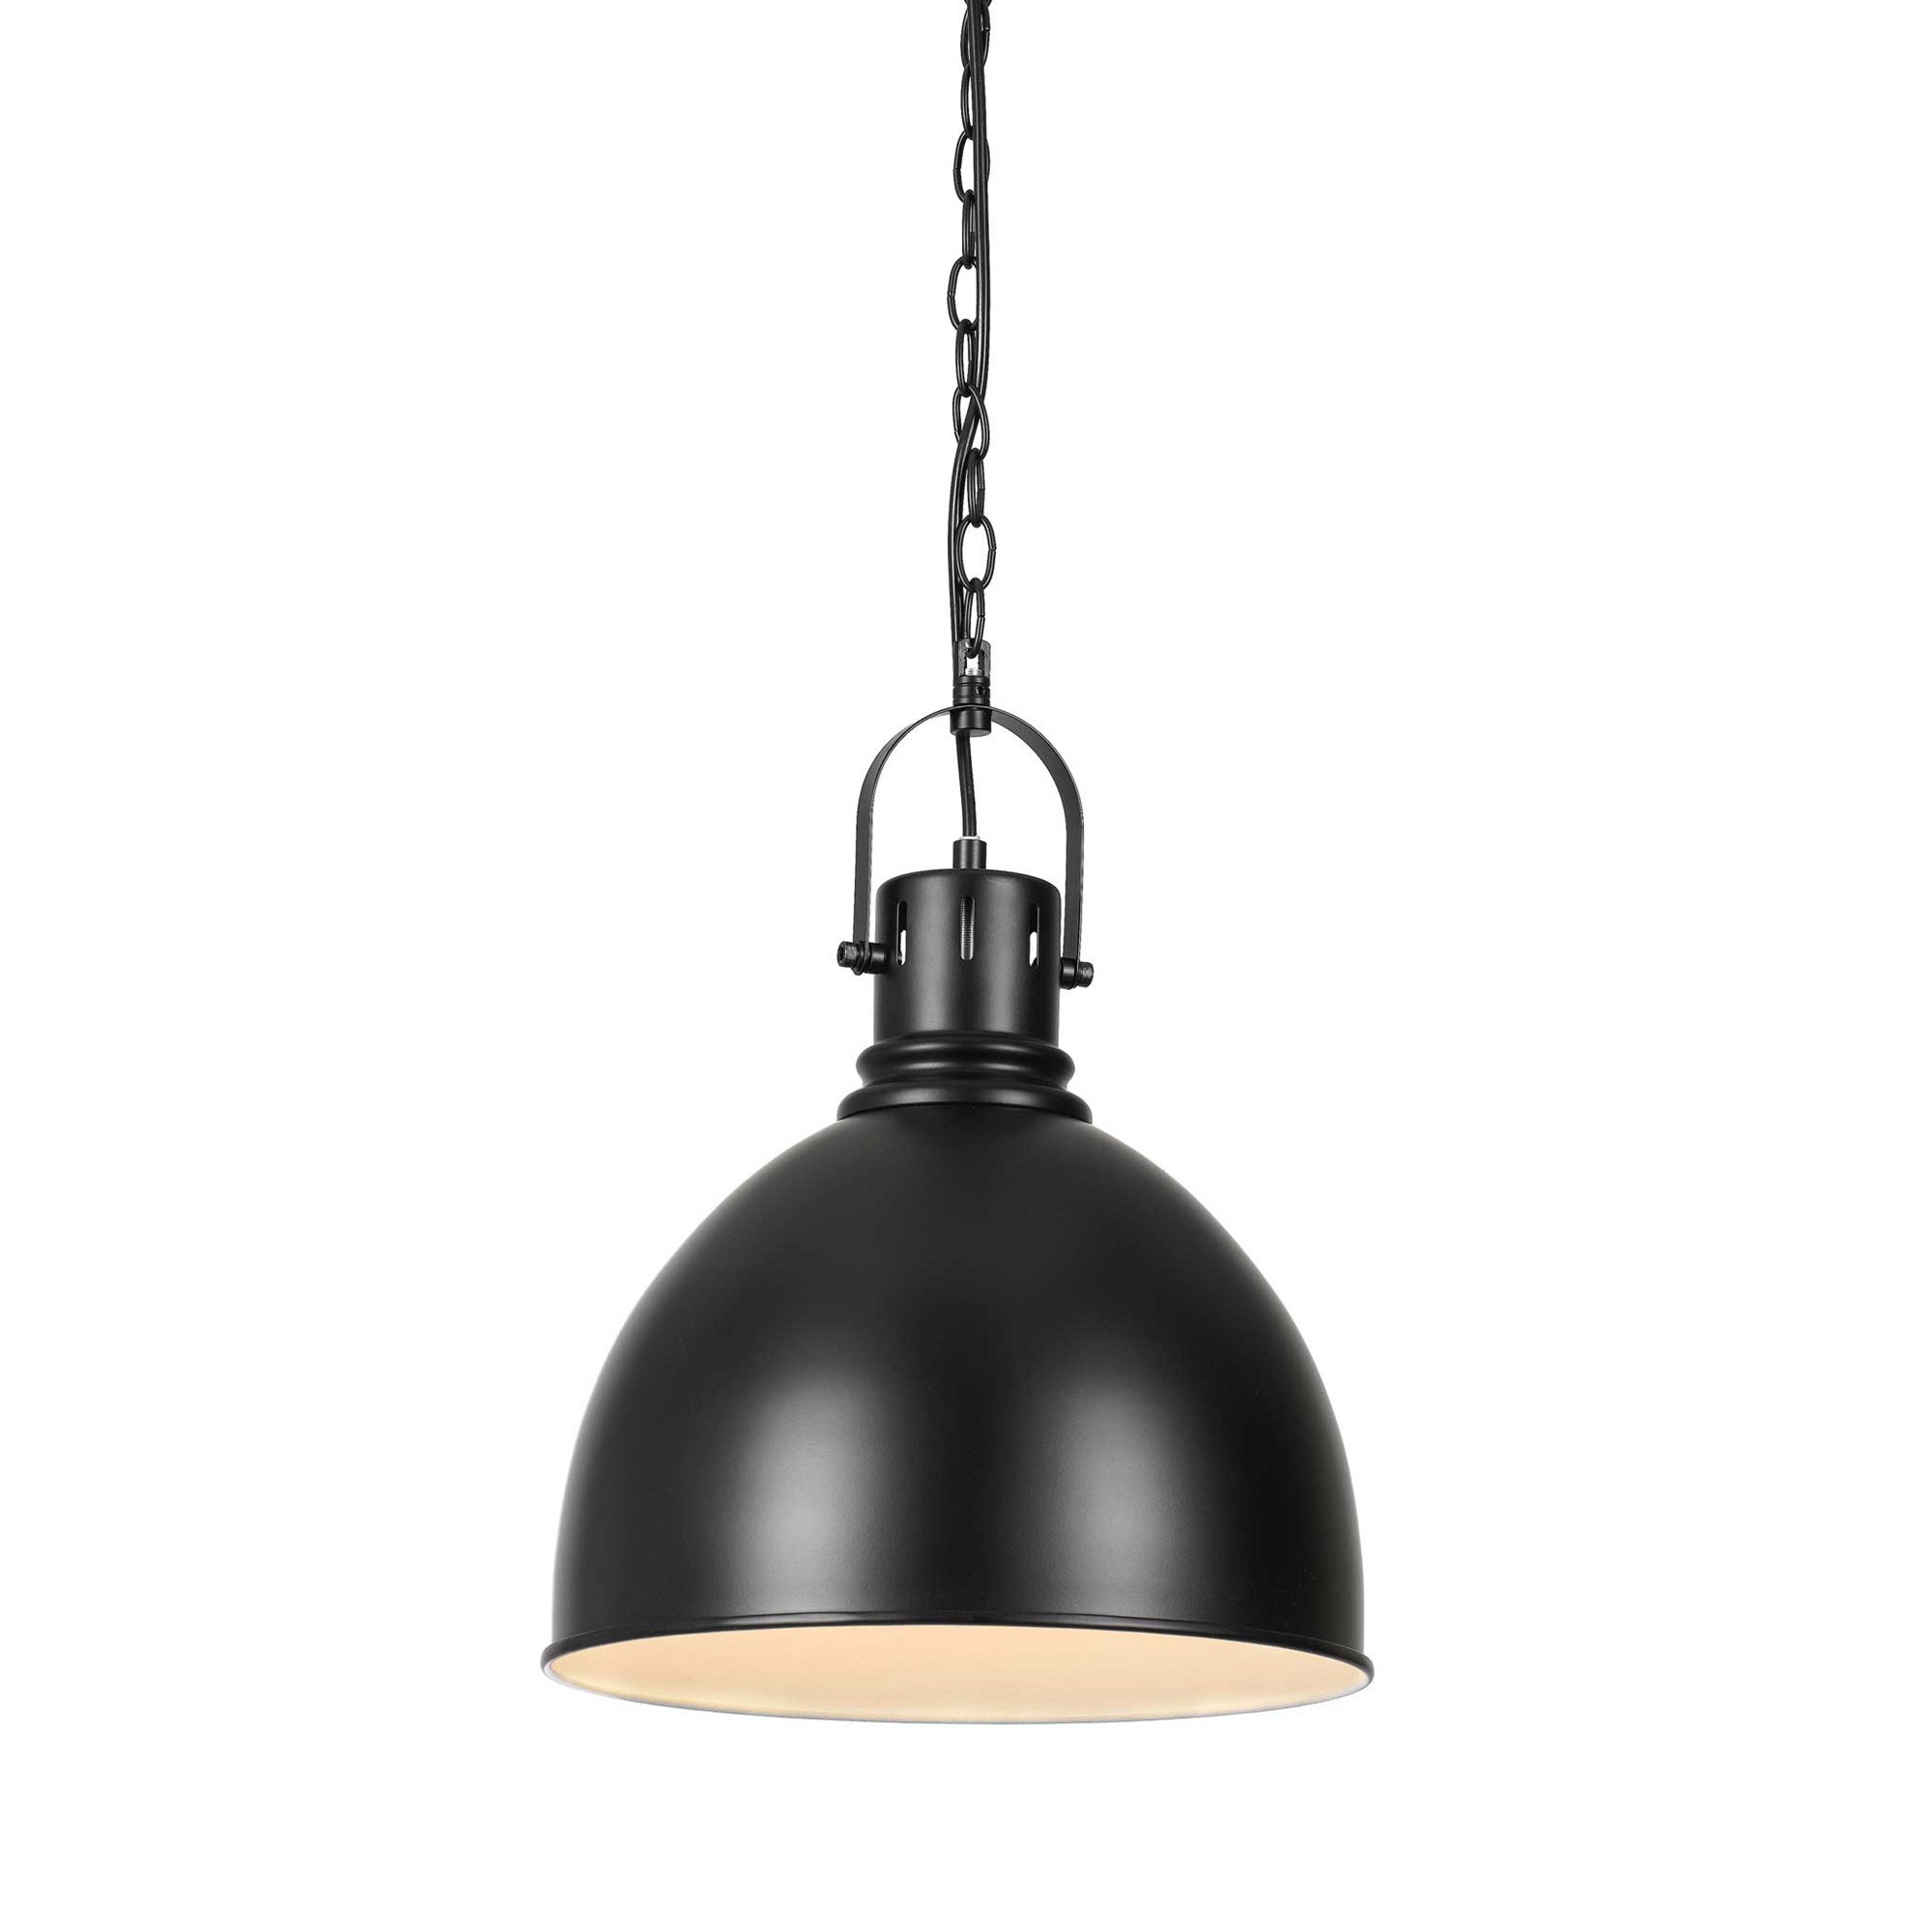 Market Metal Industrial Pendant Light, Black